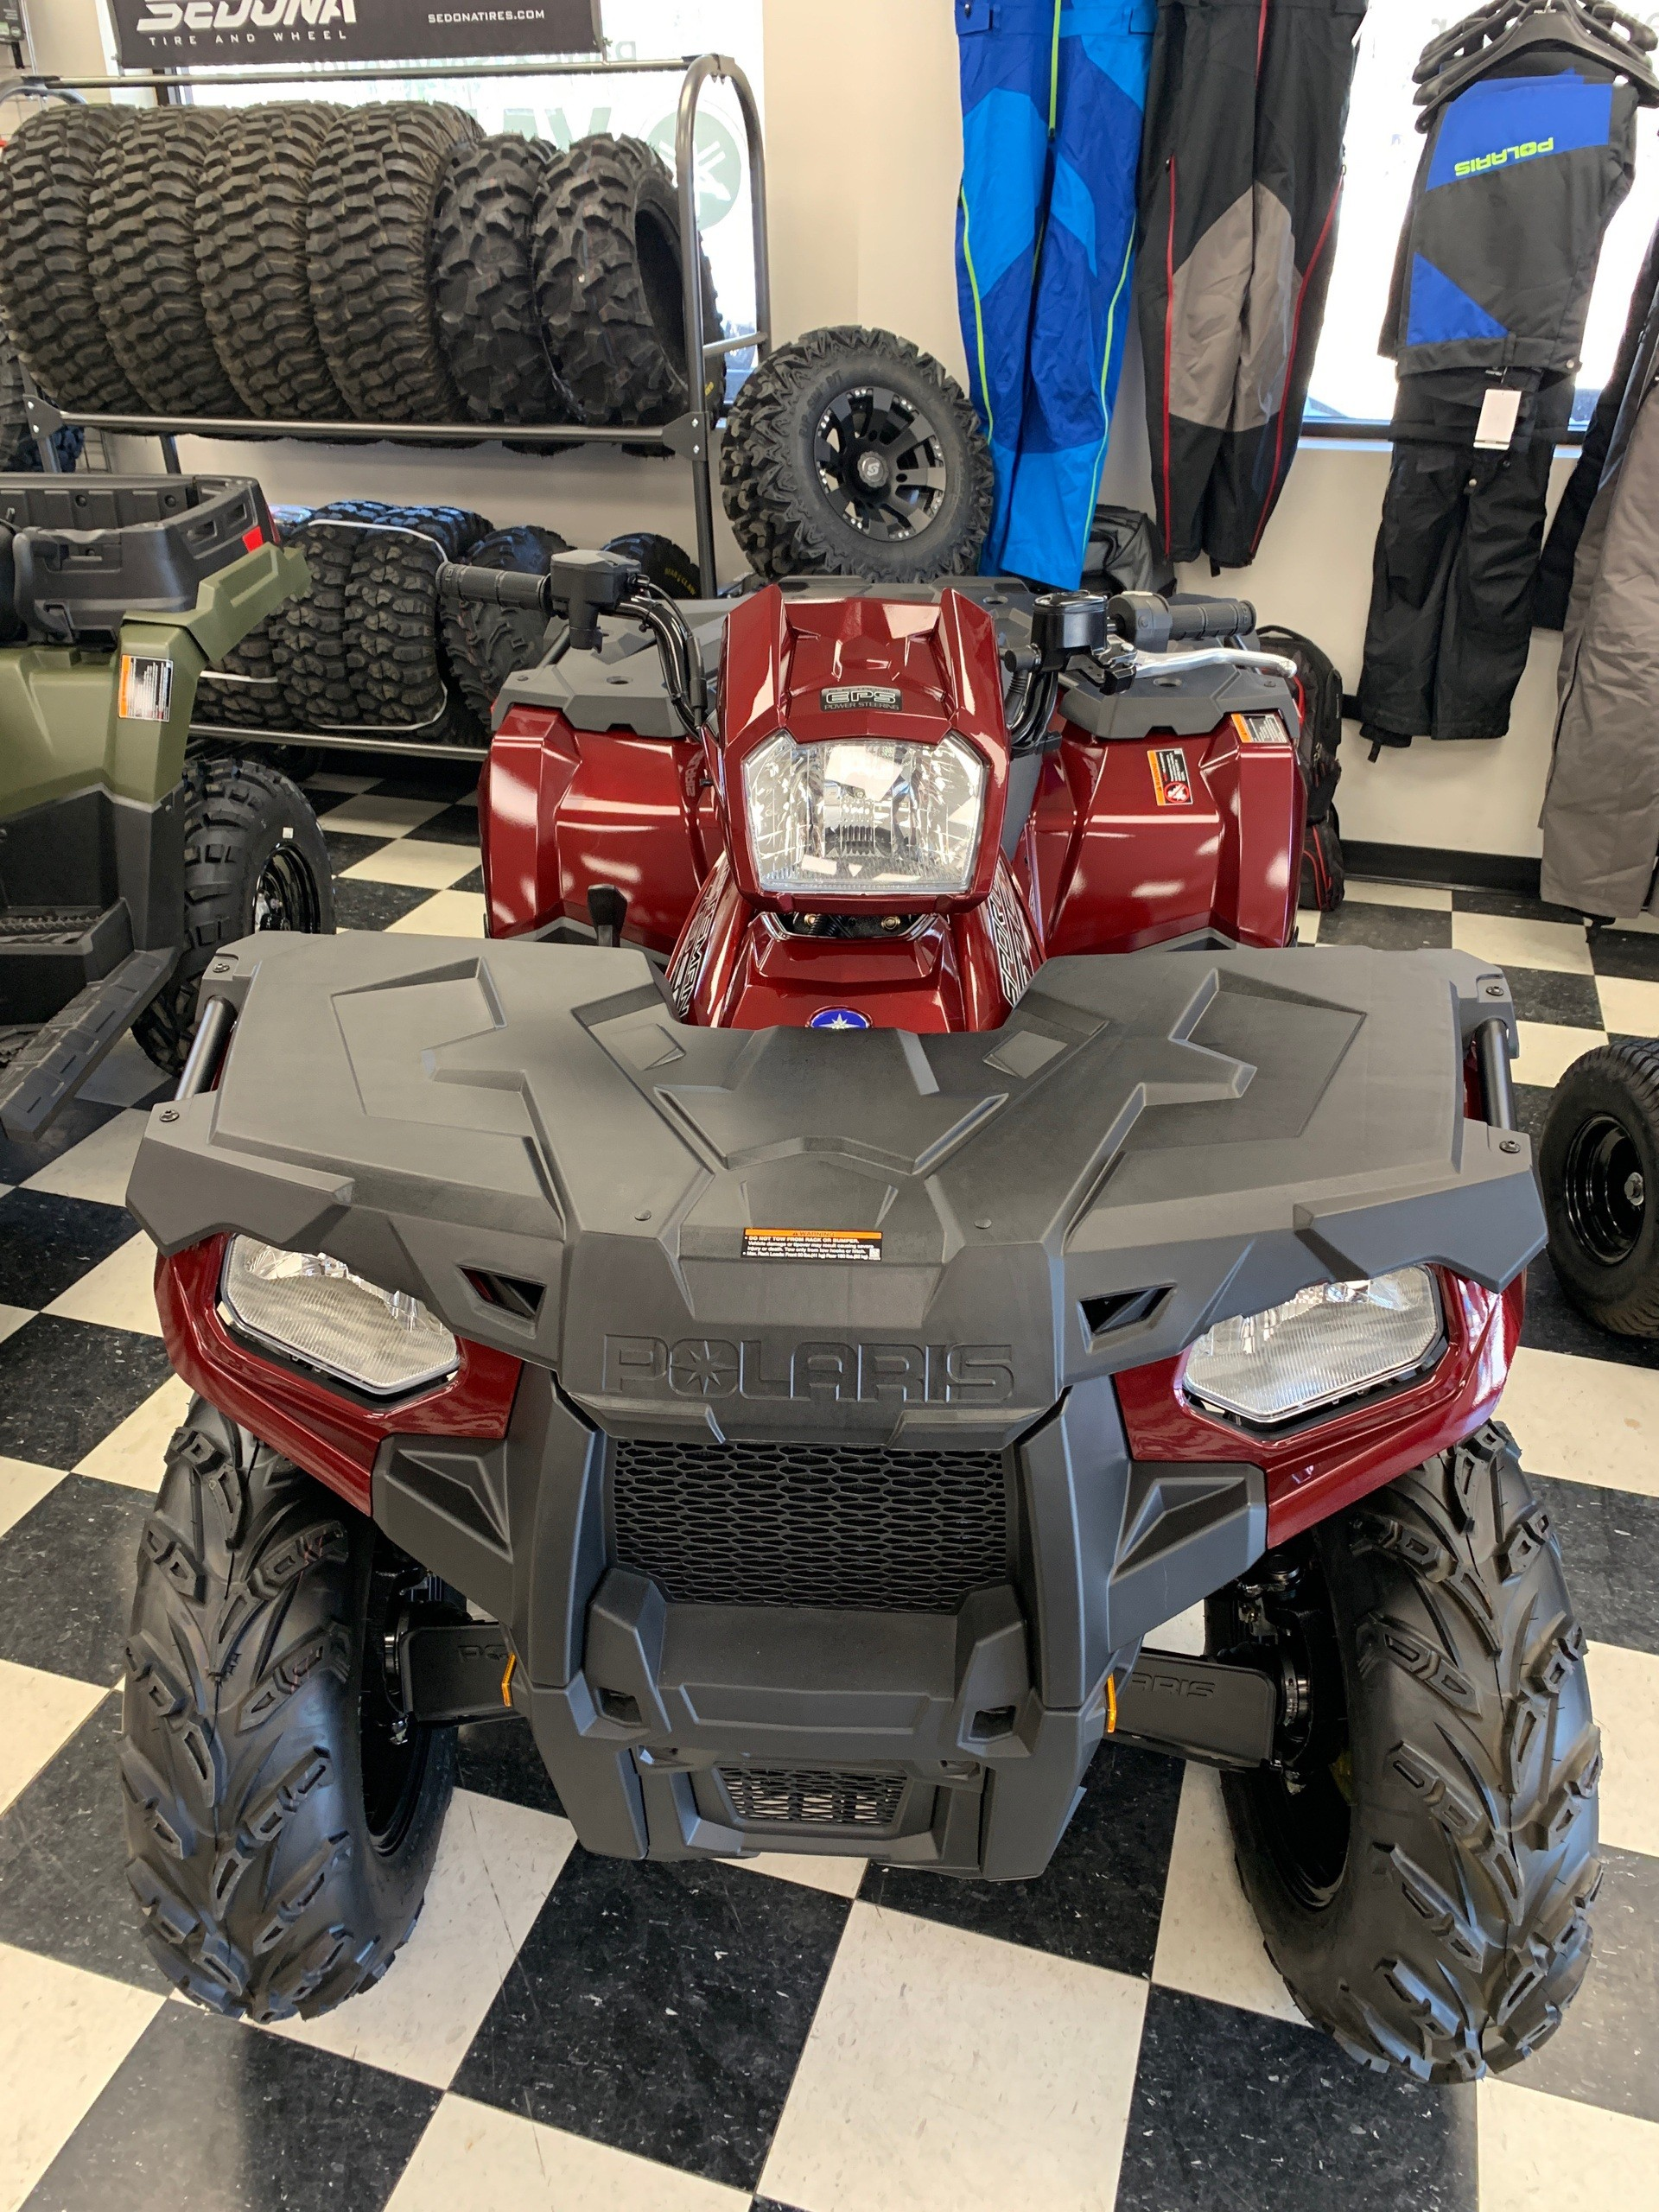 2019 Polaris Sportsman 570 SP in Milford, New Hampshire - Photo 3